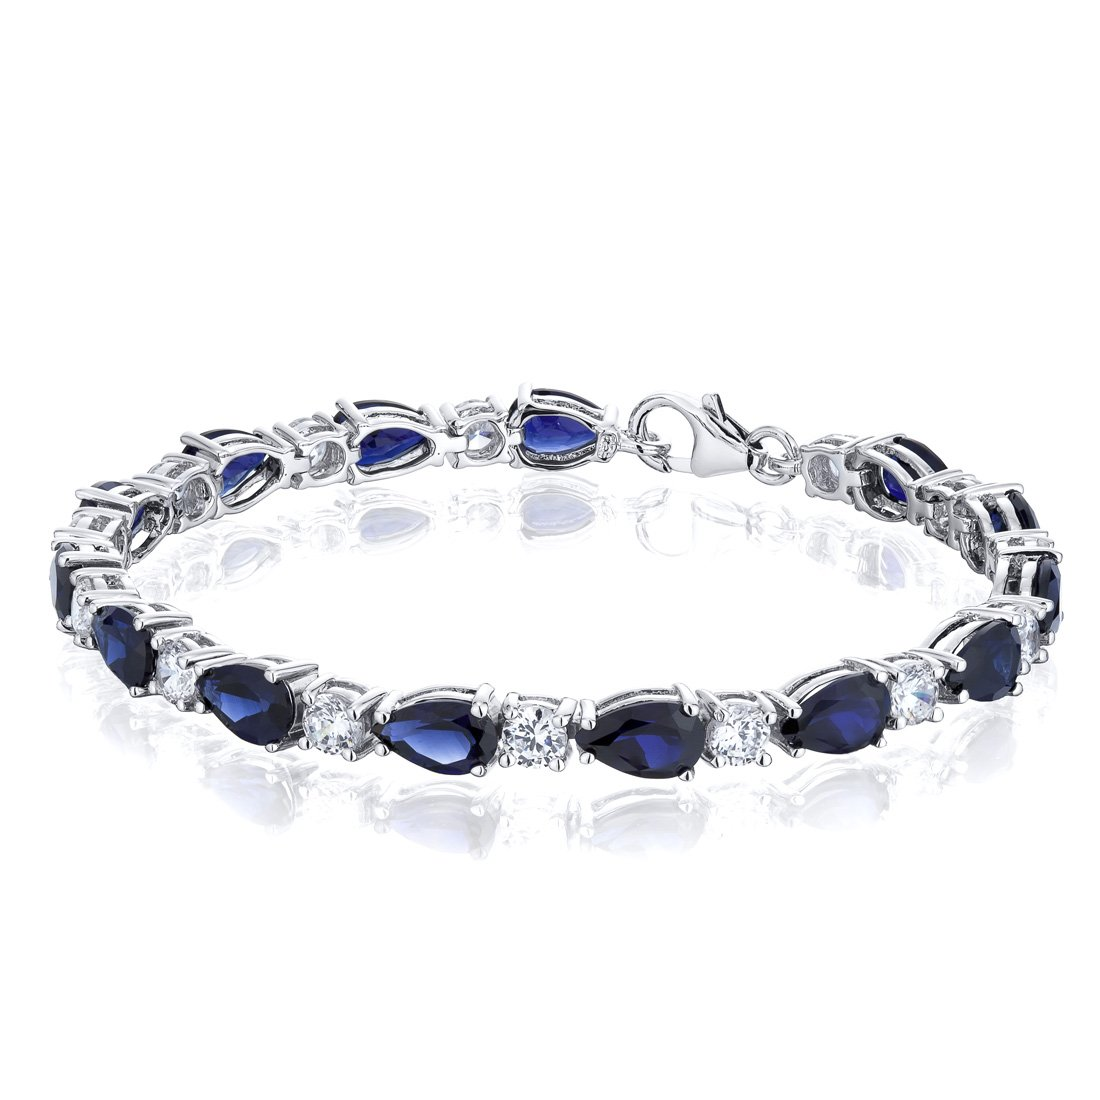 Created Sapphire Bracelet Sterling Silver Rhodium Nickel Finish Tear Drop 13.00 Carats by Peora